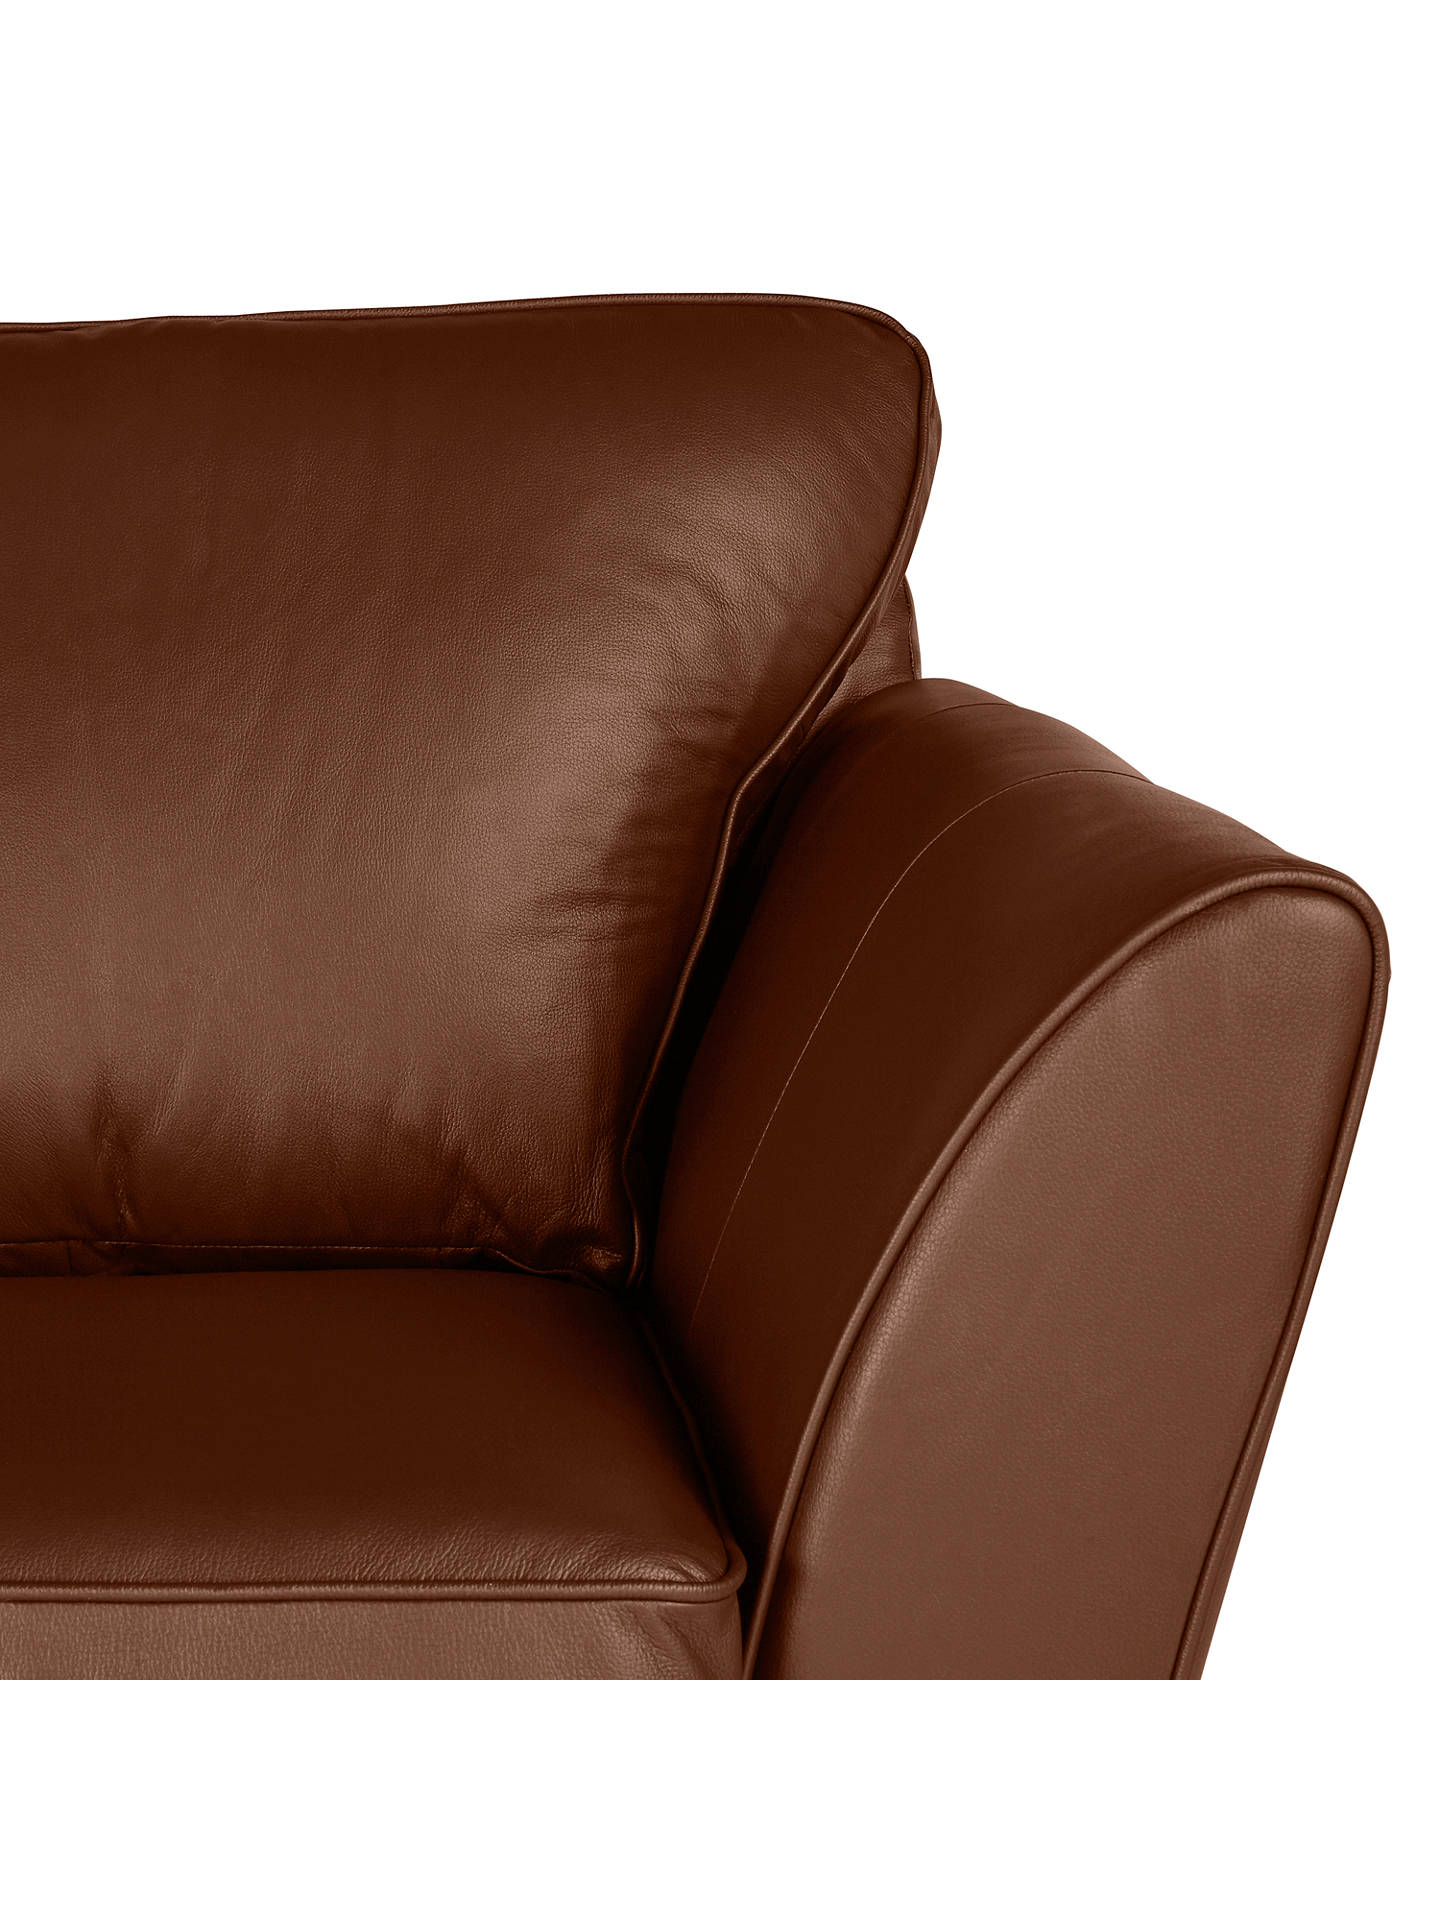 Buy John Lewis & Partners Oslo Leather Large 3 Seater Sofa, Dark Leg, Contempo Castanga Online at johnlewis.com